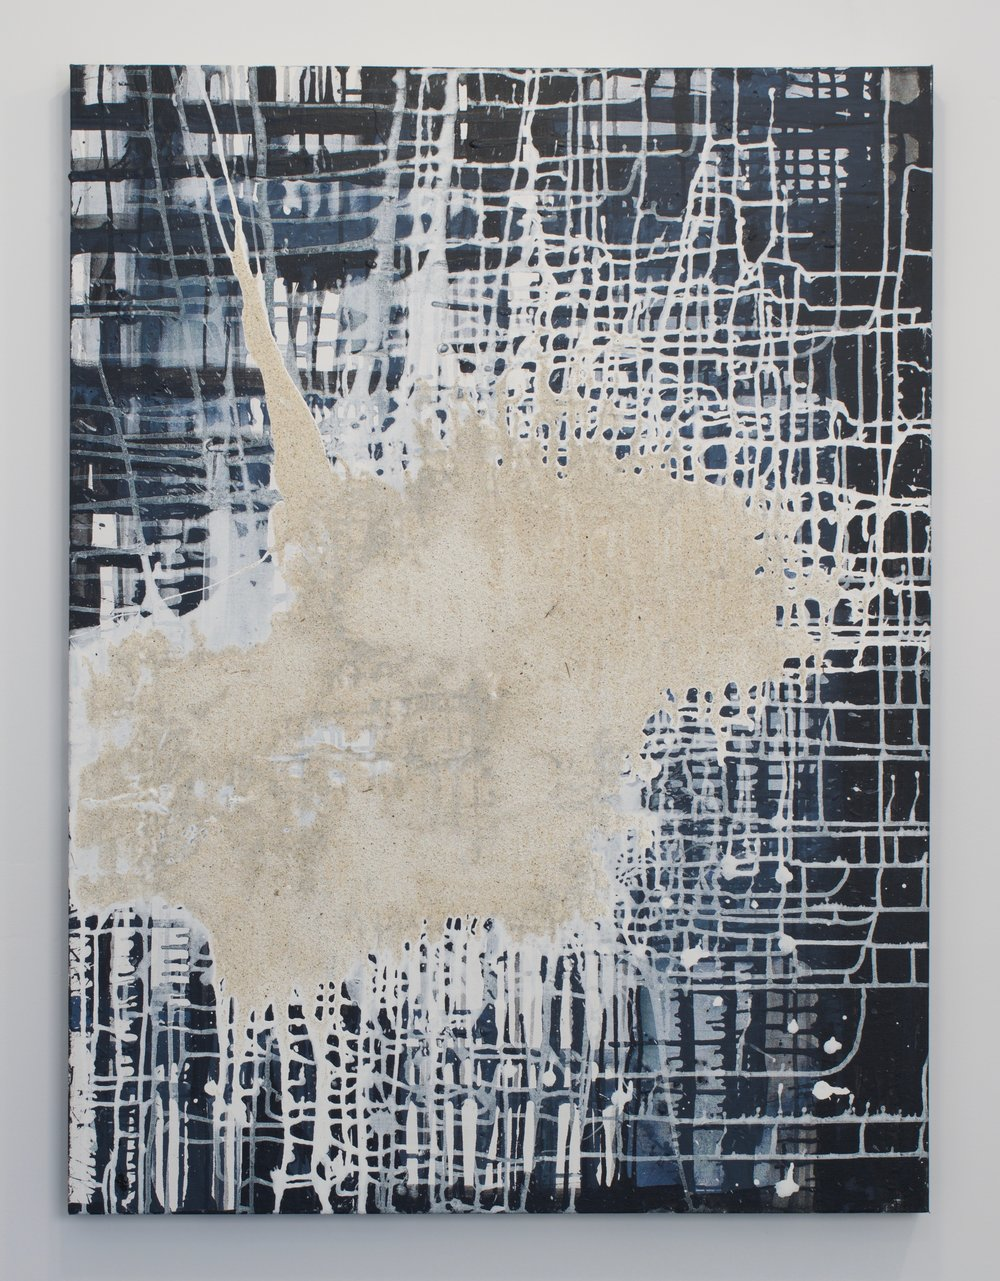 """City"", 2012. Acrylic and sand on canvas, 40 x 30 in."